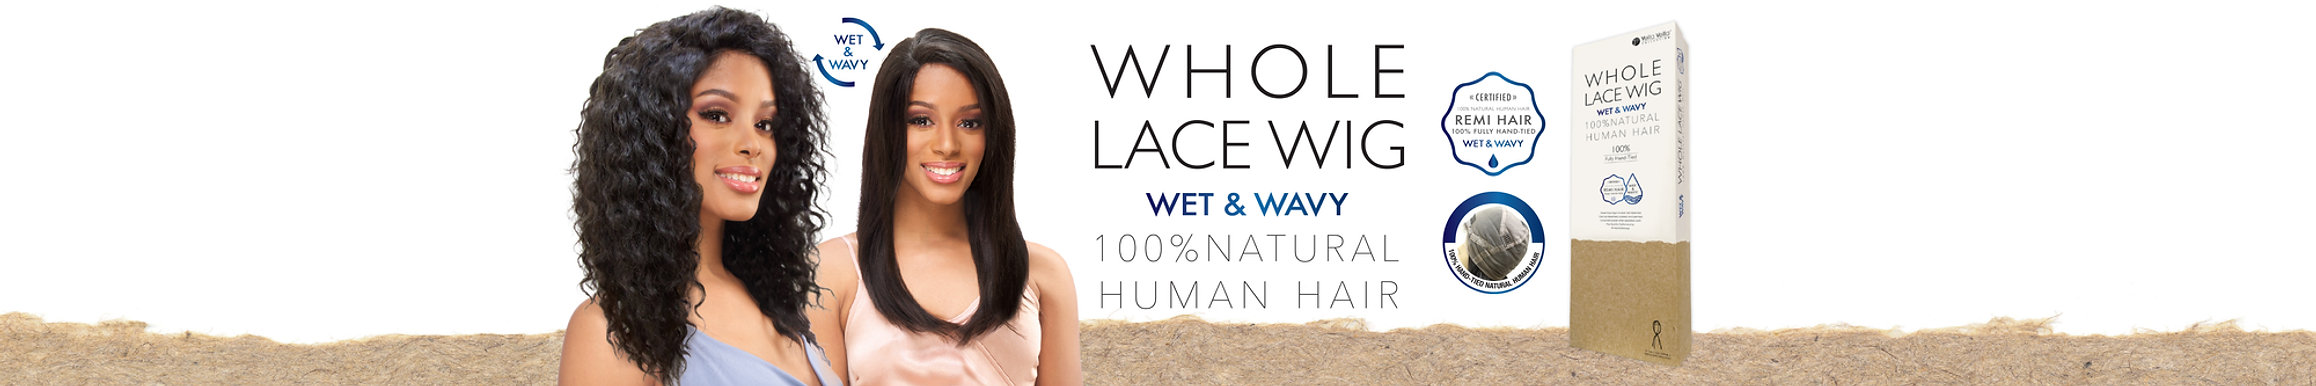 Natural_WW-Whole Lace wig copy.jpg